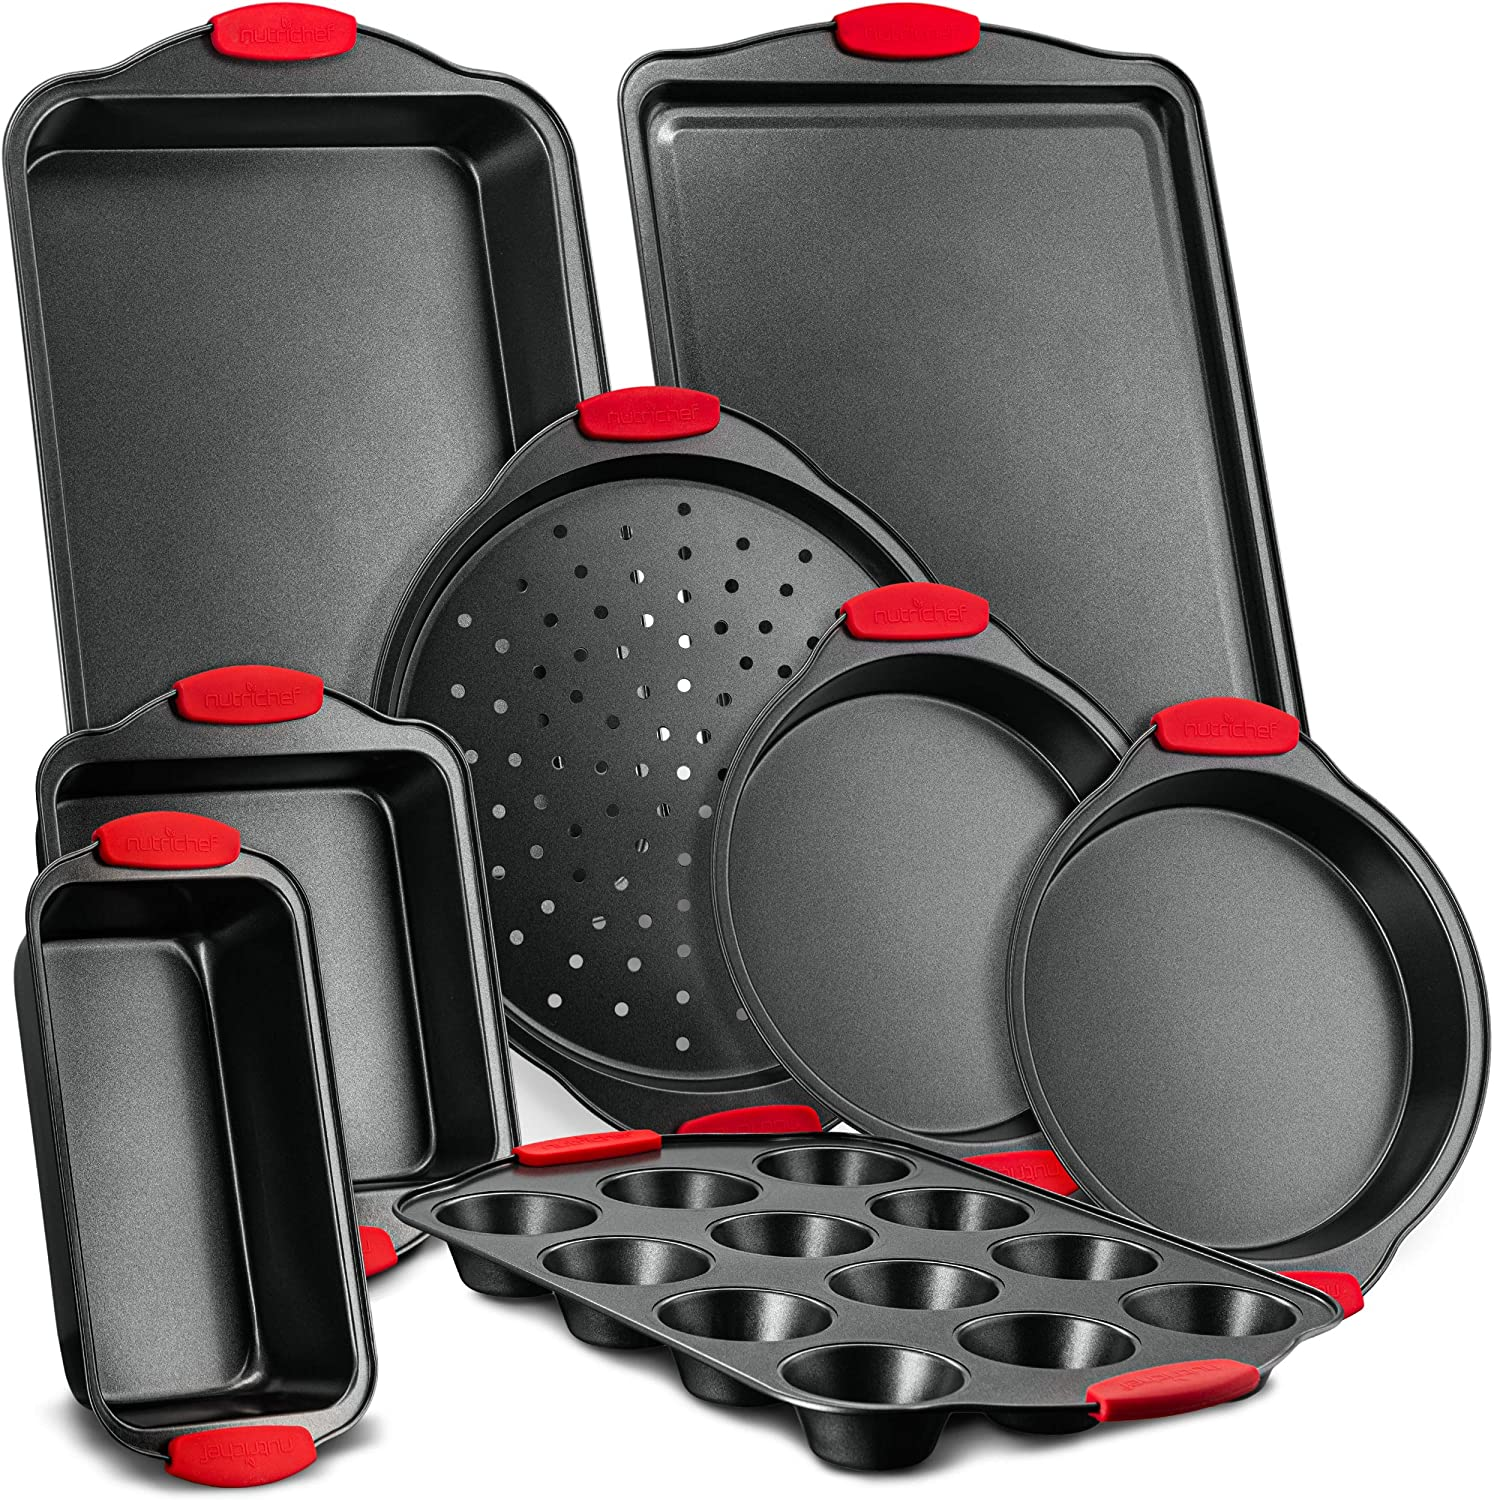 Nutrichef NCSBS8S 8-Piece Carbon Steel Nonstick Bakeware Baking Tray Set w/Heat Red Silicone Handles, Oven Safe Up to 450°F, Black